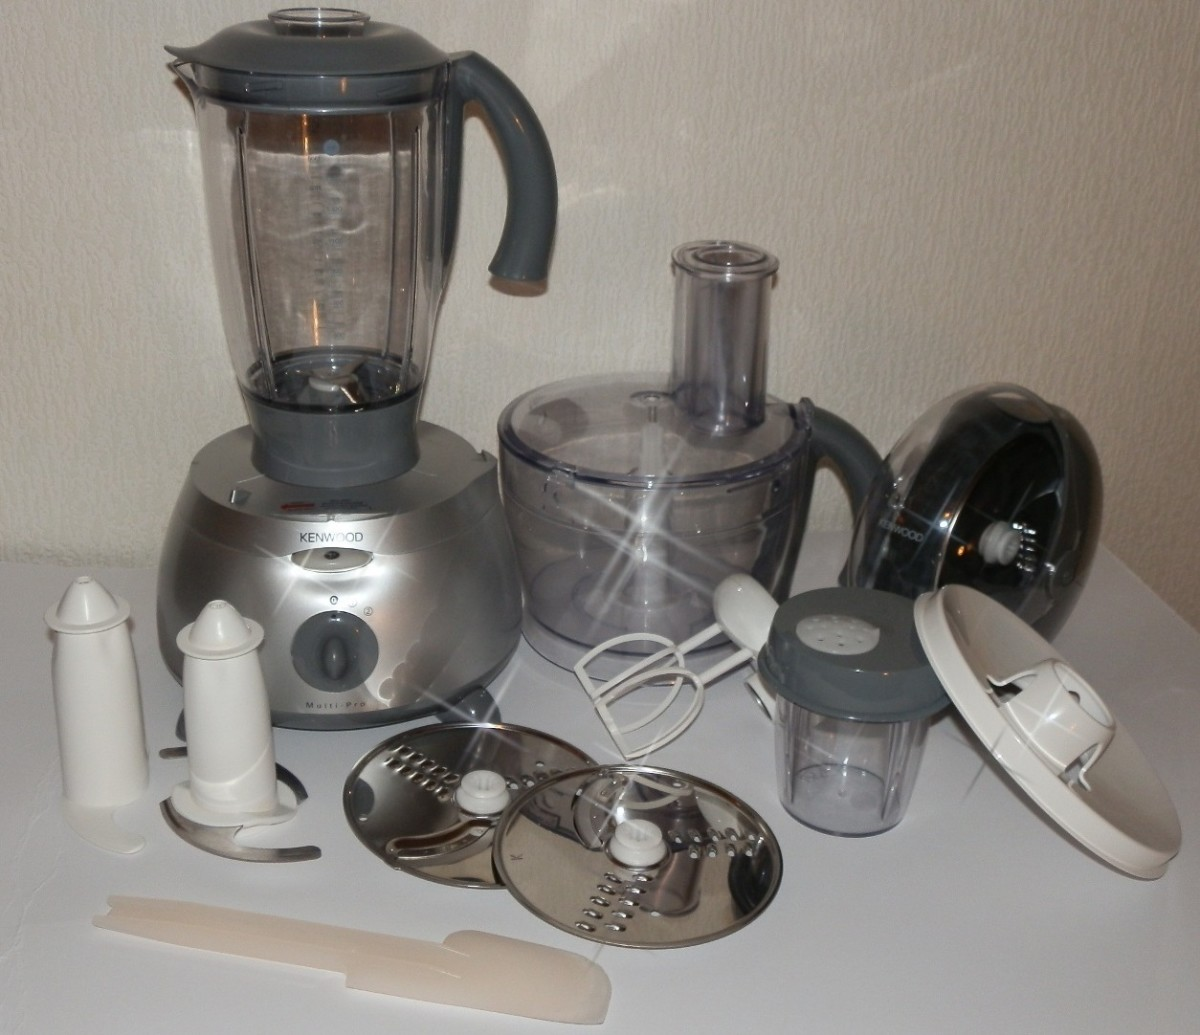 The Kenwood Multi-Pro FP586 Food Processor